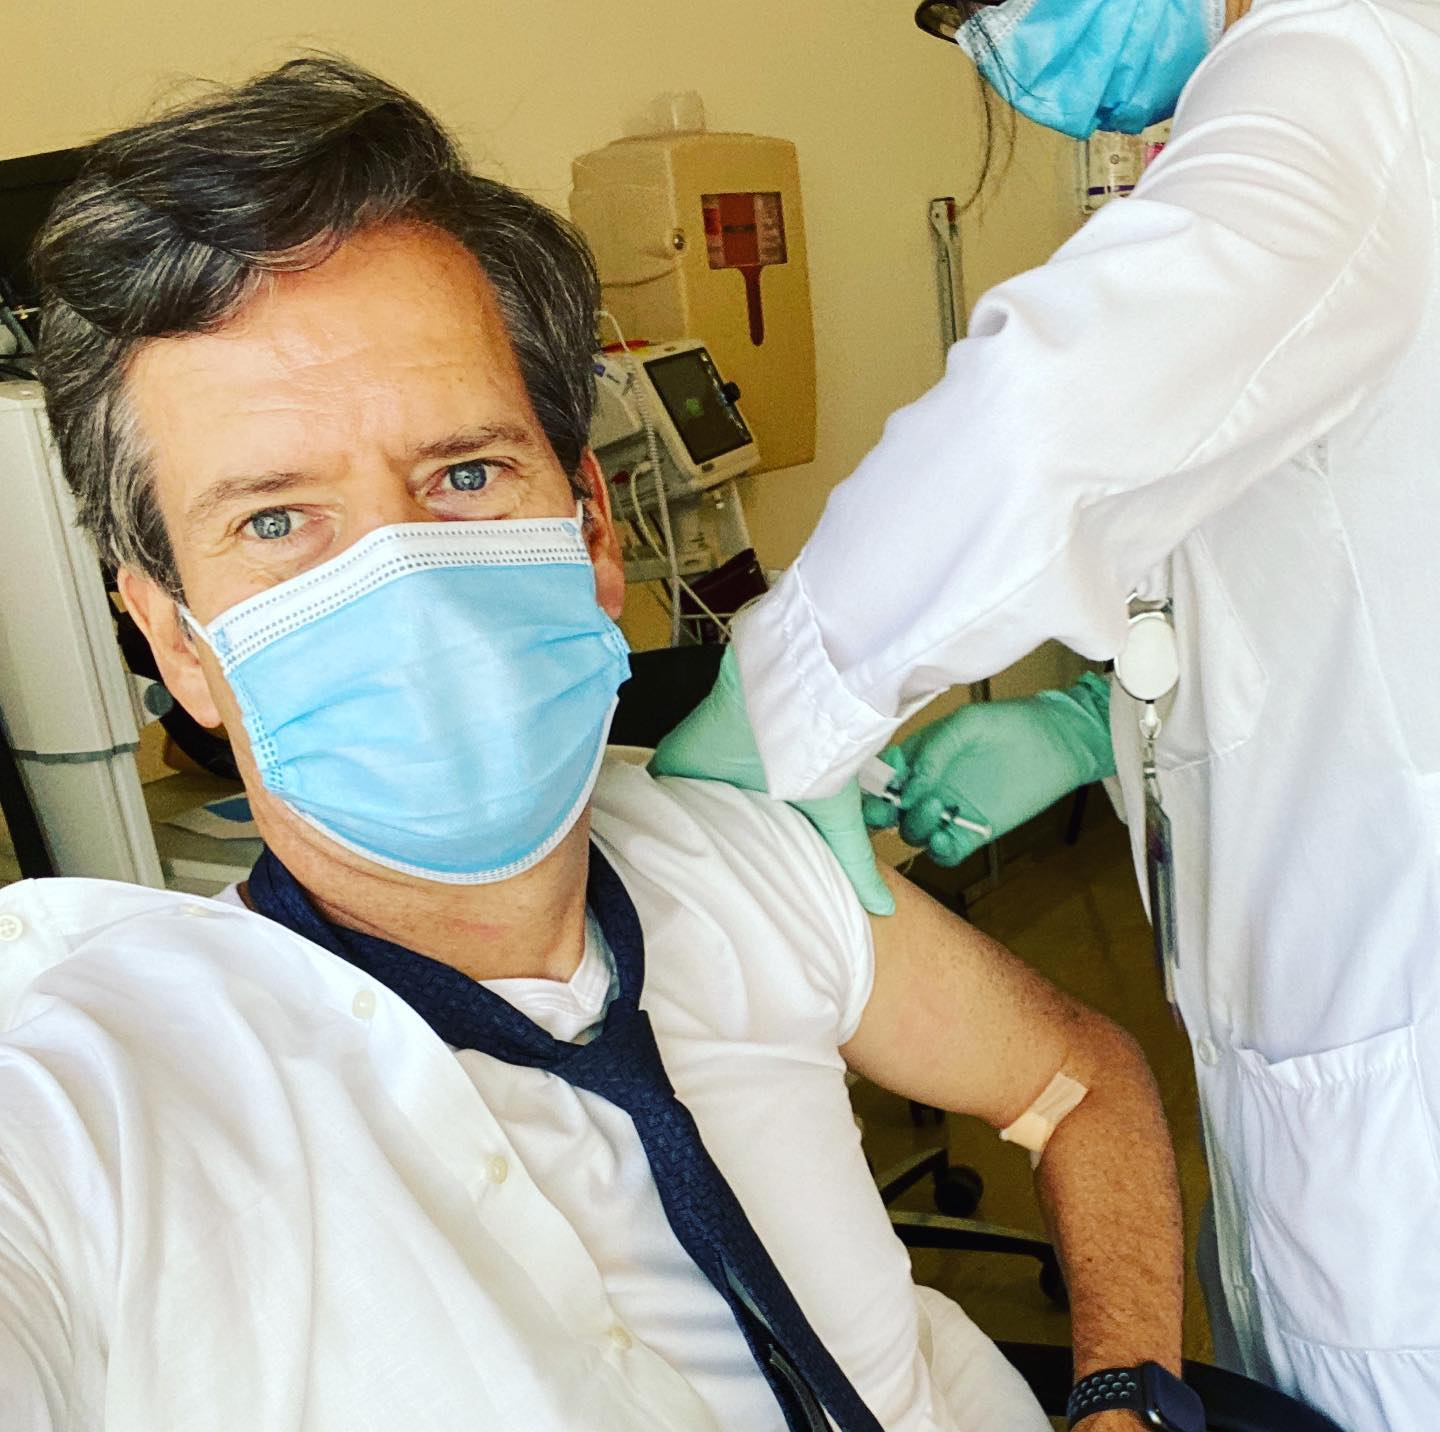 COVID-19 vaccine is coming